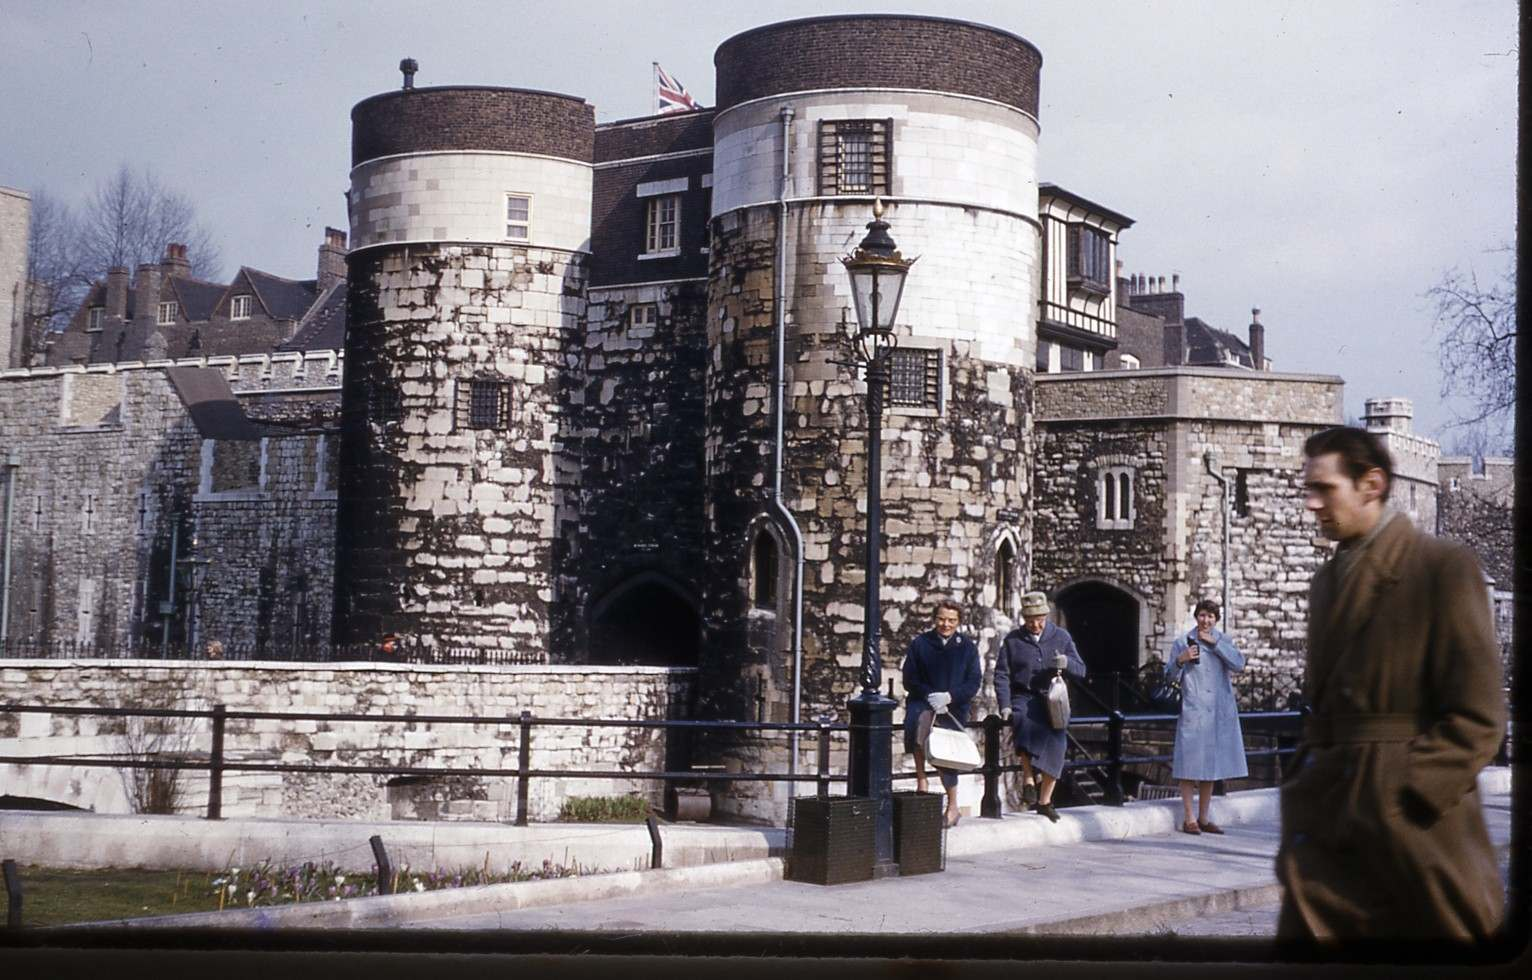 Tower of London 1962.